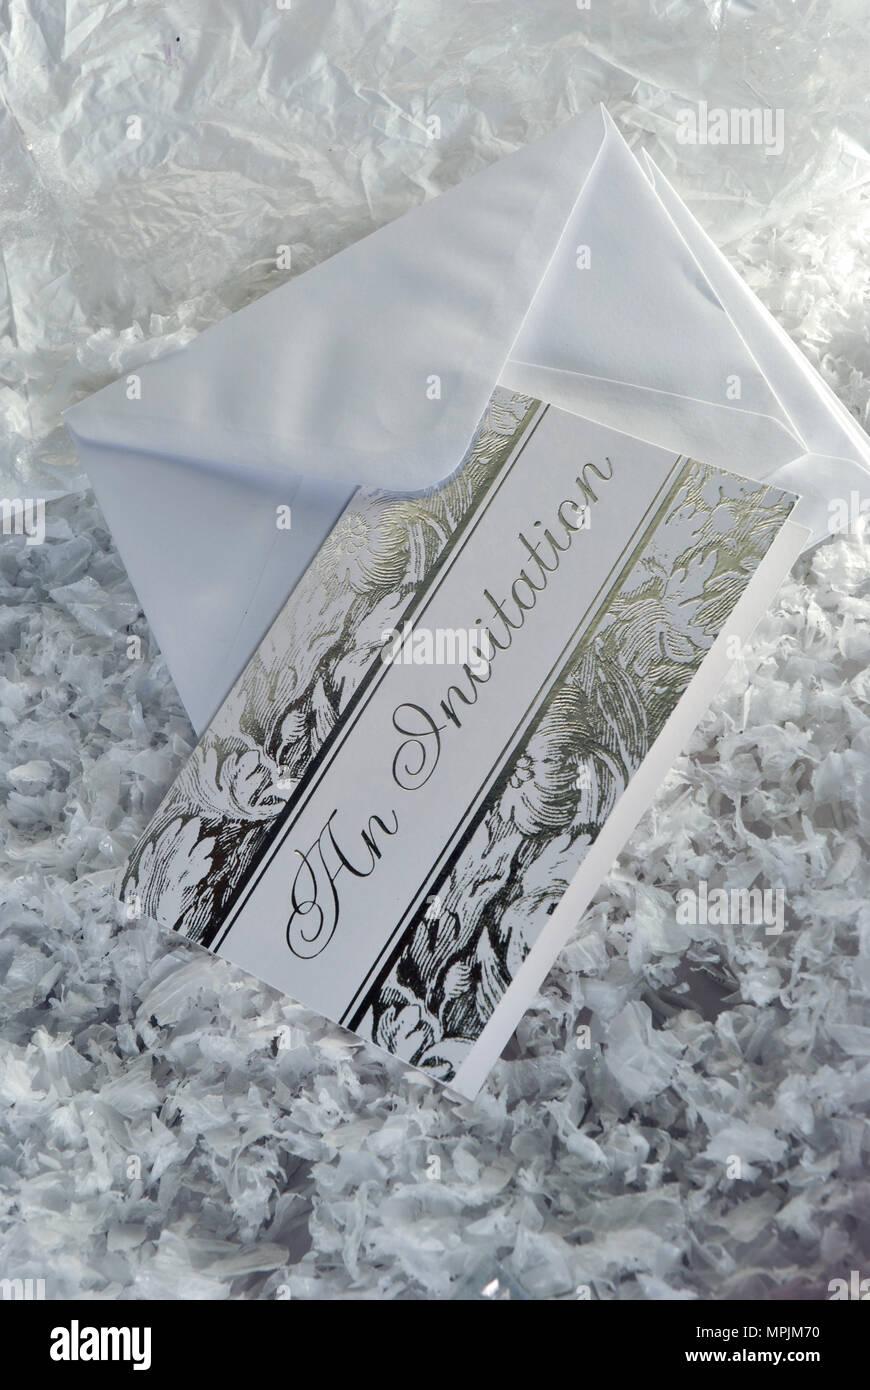 engraved invitation with snow stock photo 186037124 alamy